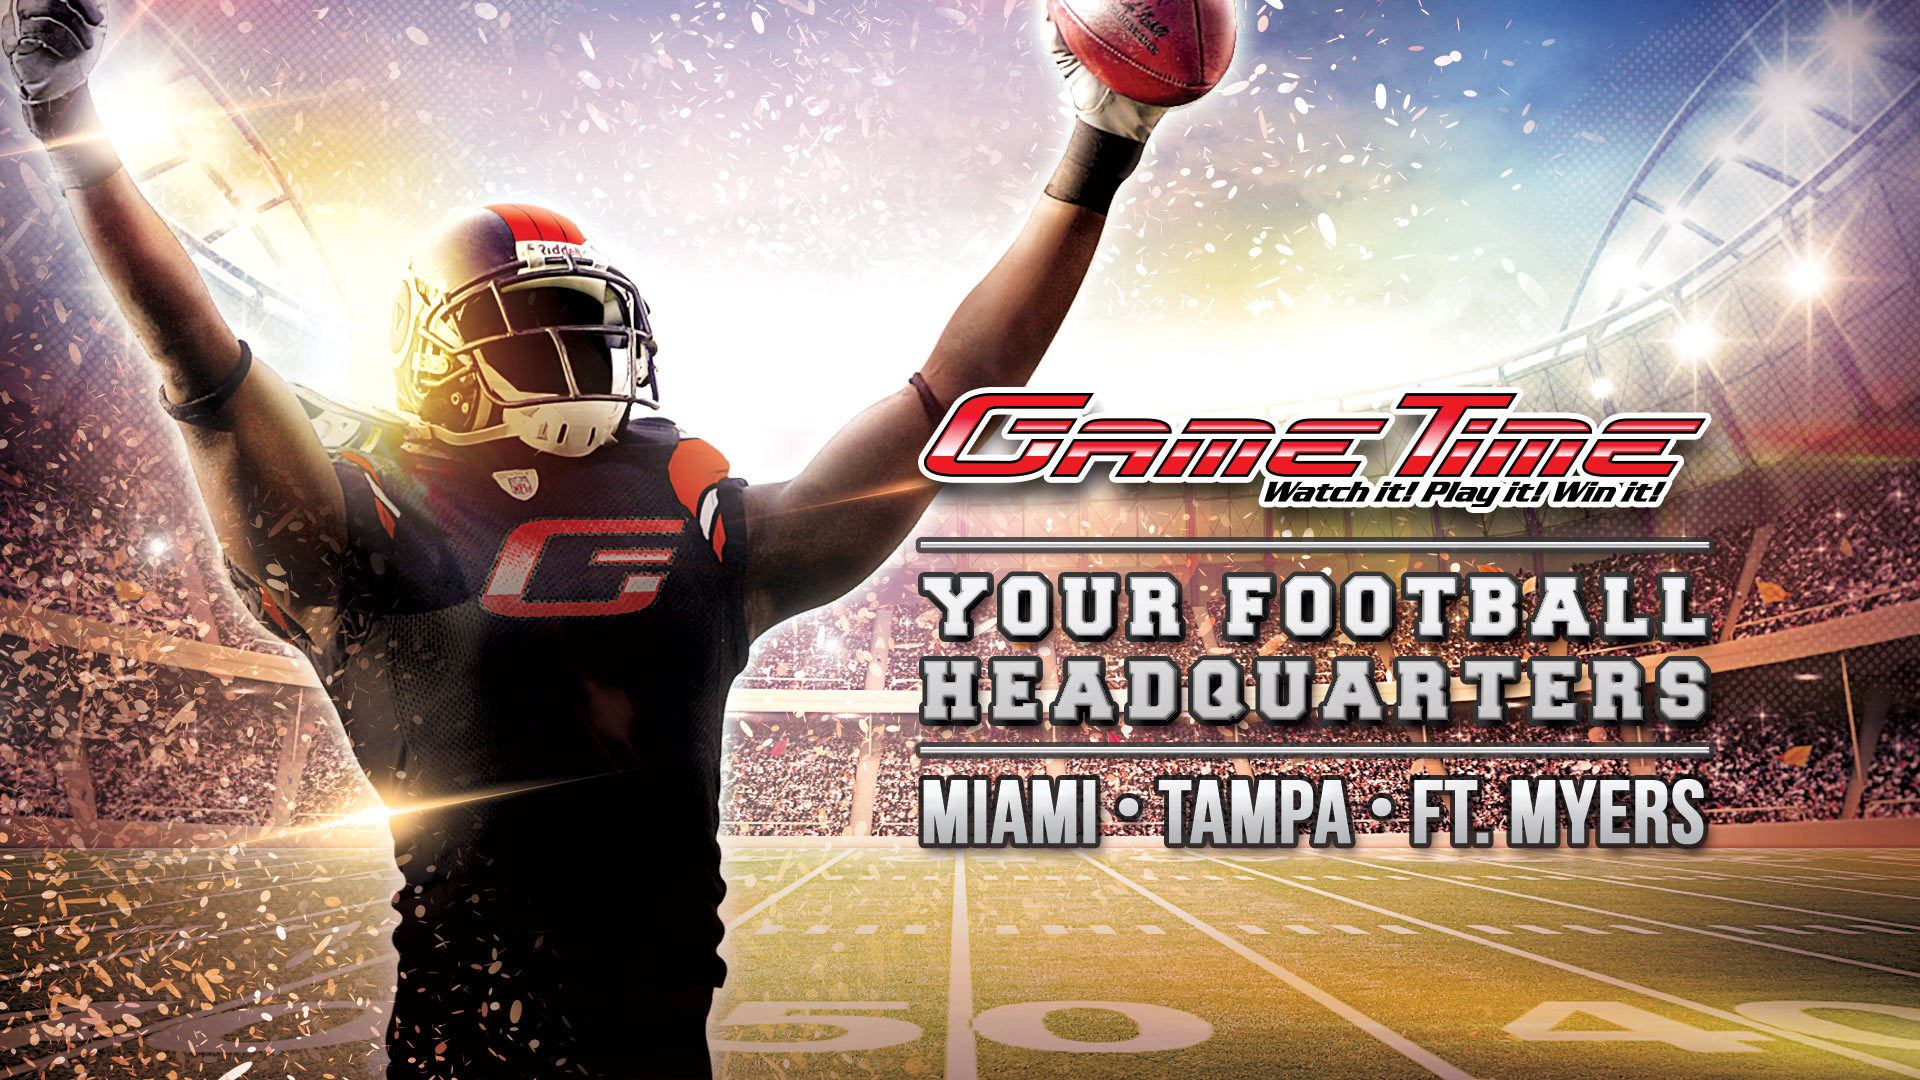 GameTime-sports-bar-restaurant-Summer-Back-To-School-Football_Headquarters-Miami-Tampa-Fort-Myers